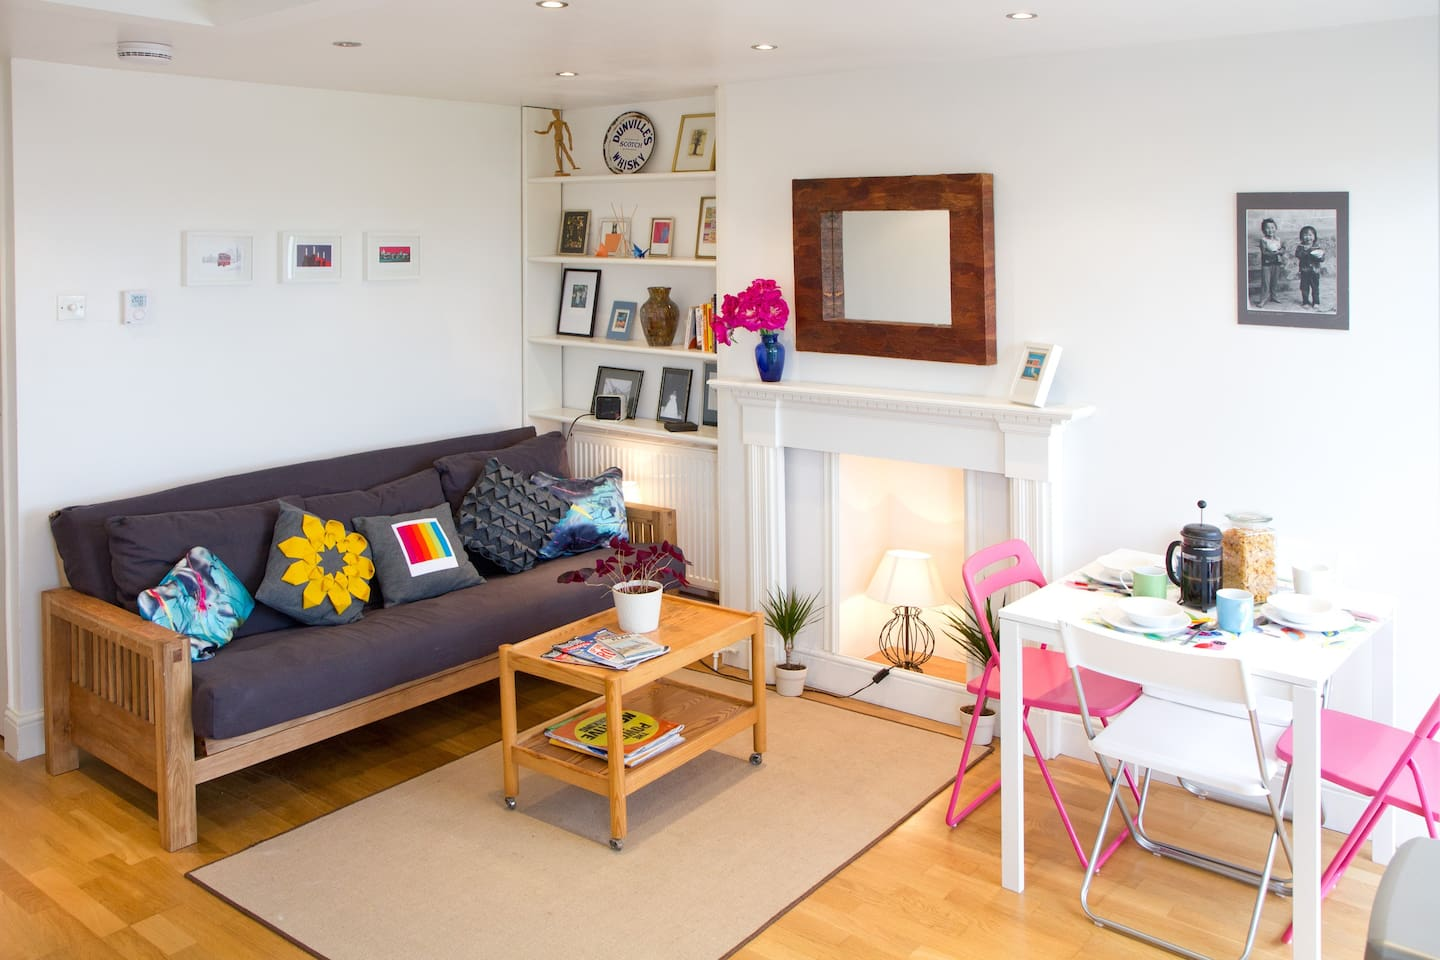 Base your London adventure in our bright and colourful studio!